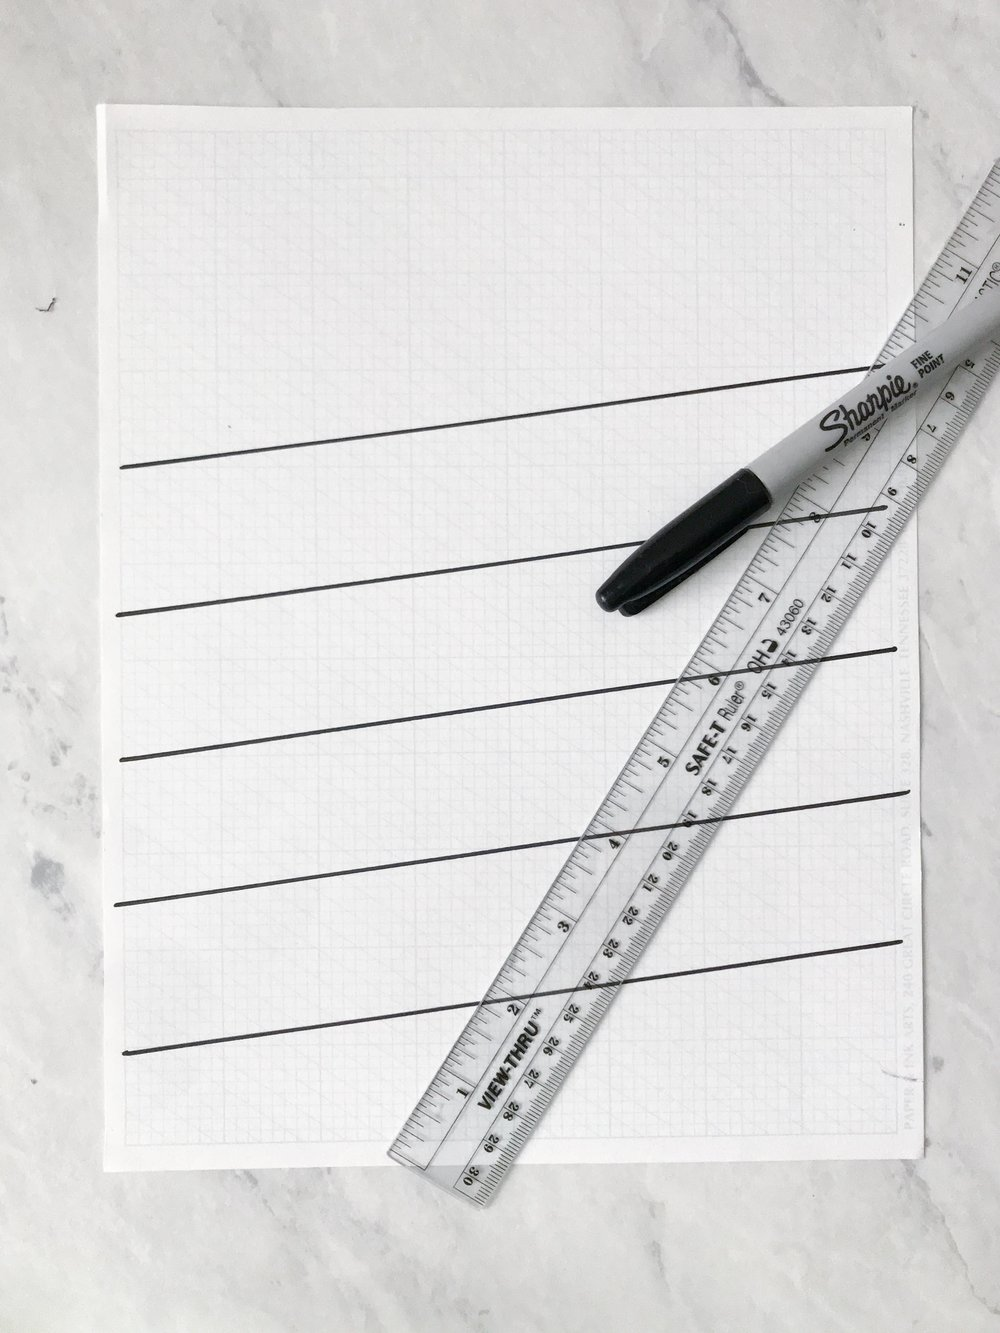 STEP 2:TRACE YOUR LINES - Trace over your lines with black marker to make them easier to see underneath of your marker paper when you begin your writing.